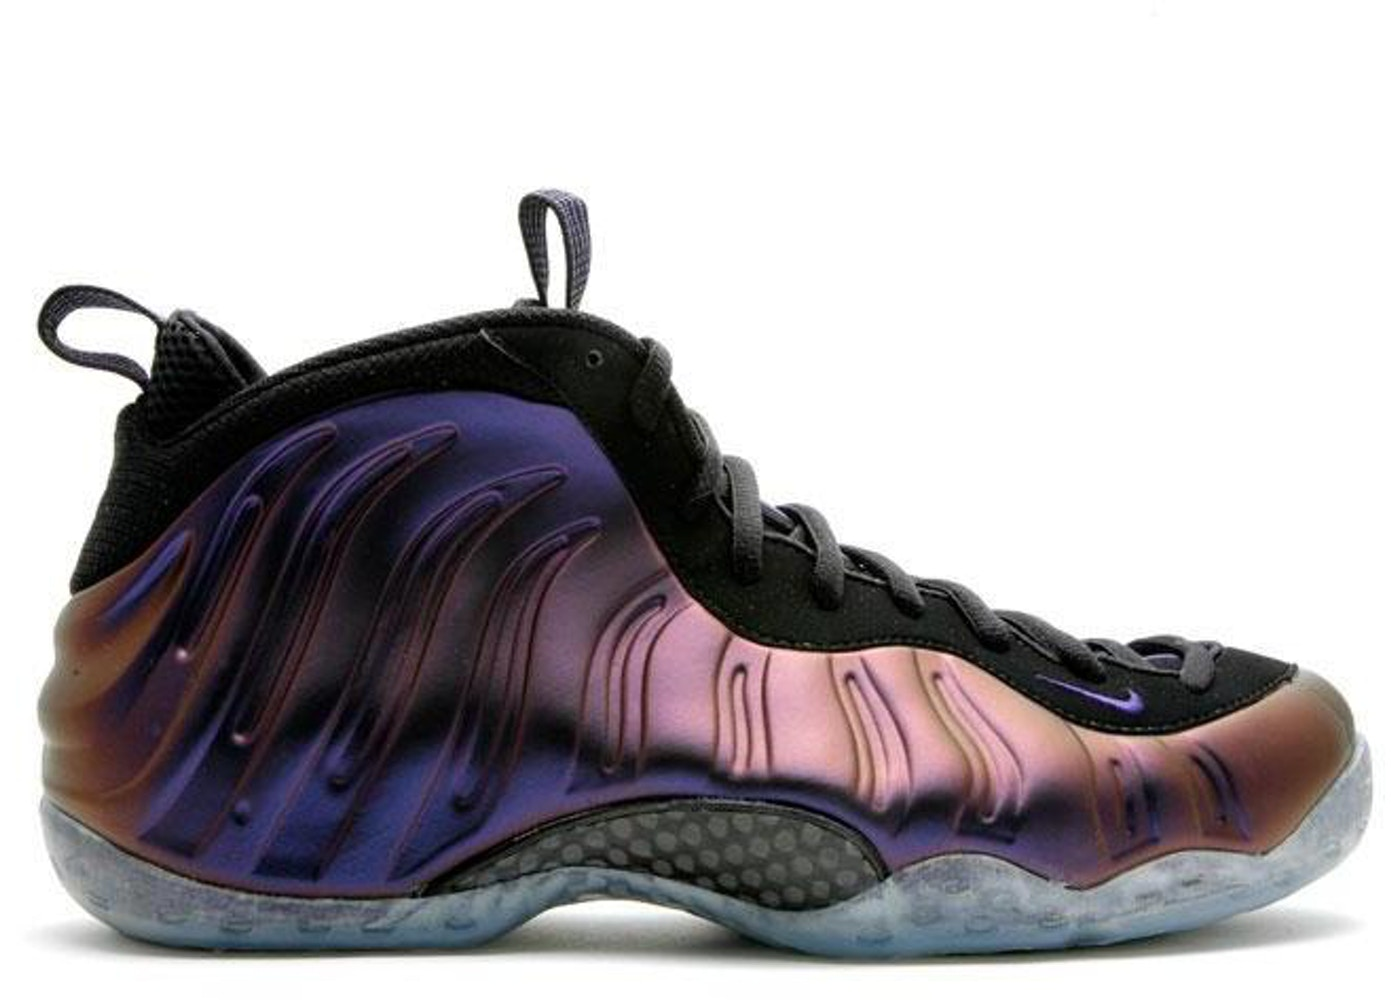 premium selection 1fad9 458a4 Air Foamposite One Eggplant